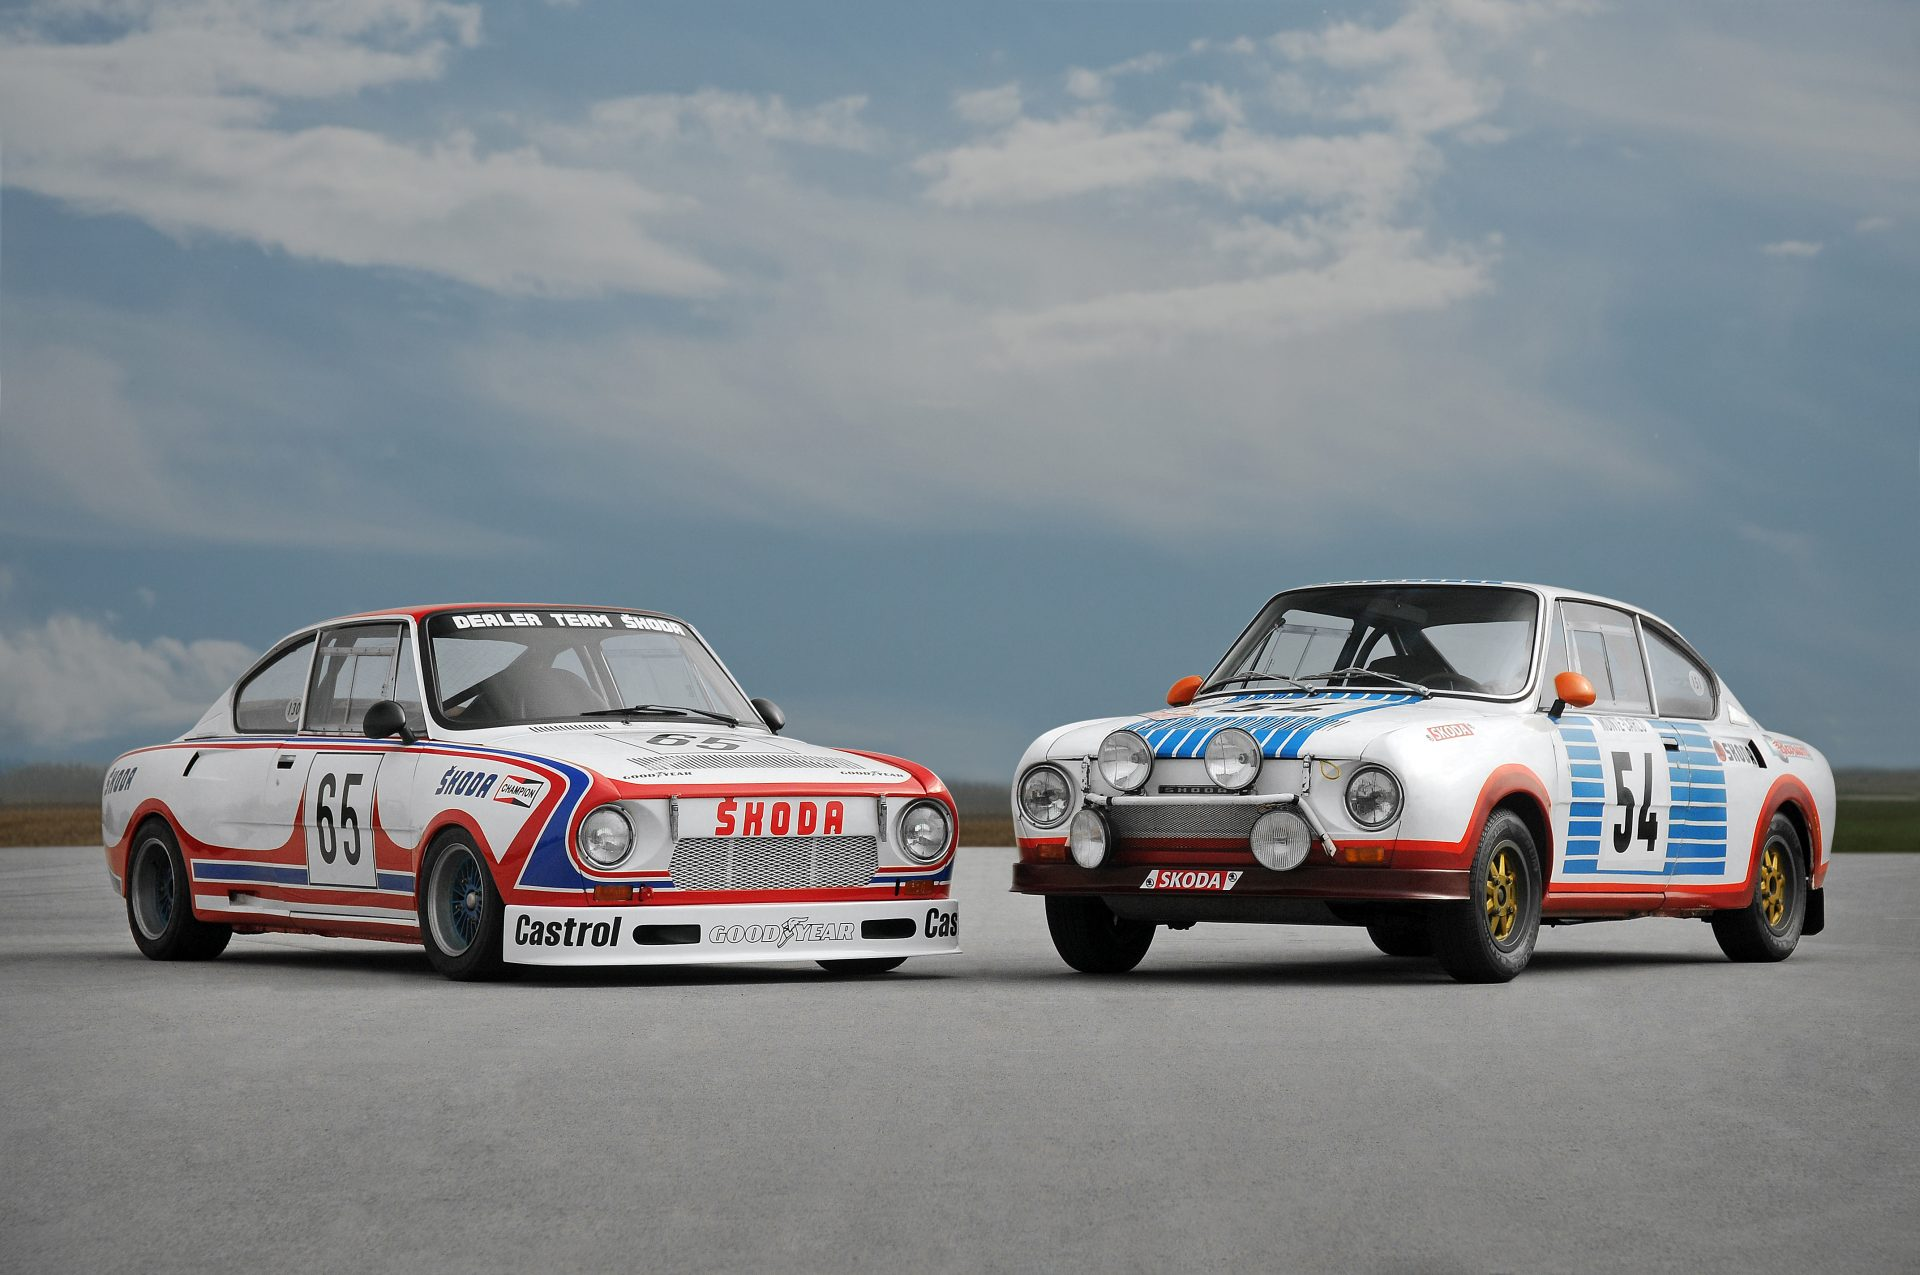 8 Cars That Wrote the History of ŠKODA Motorsport